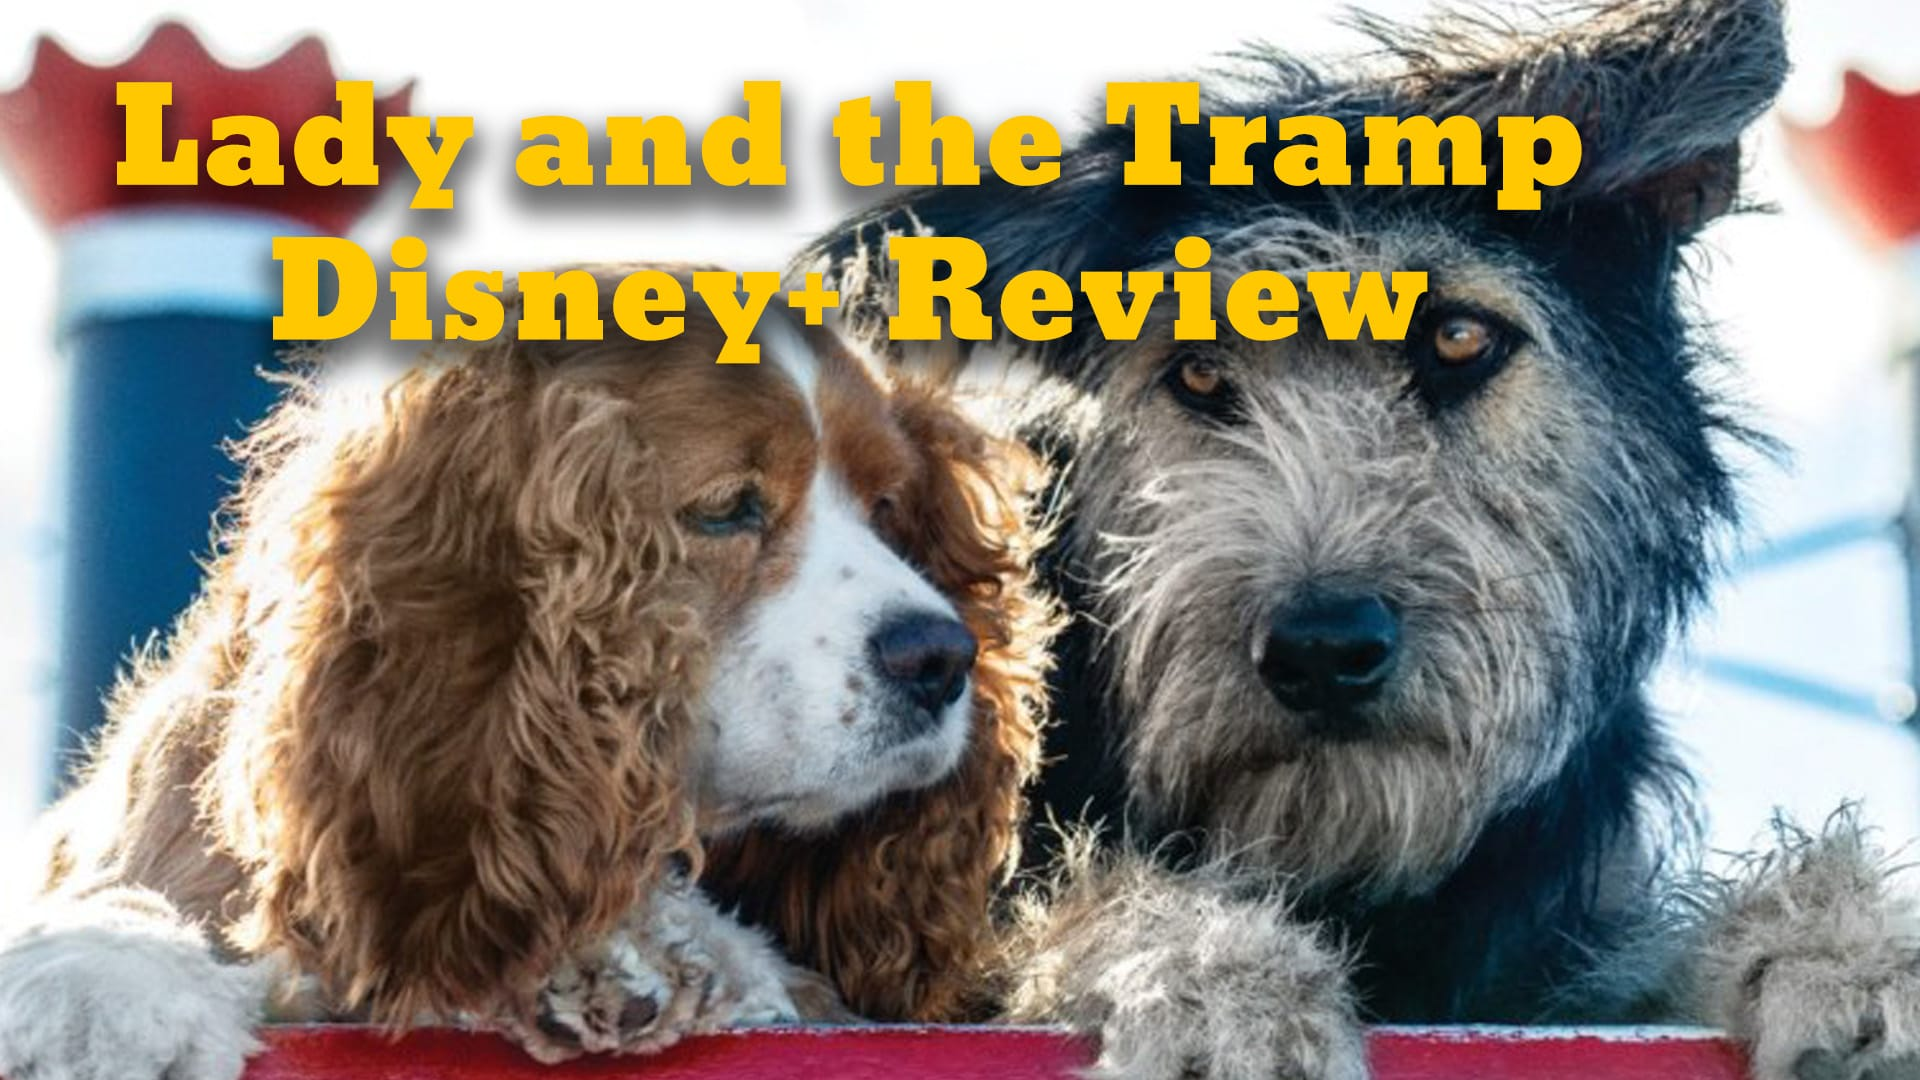 Lady and the Tramp – A Big First Movie for Disney Plus